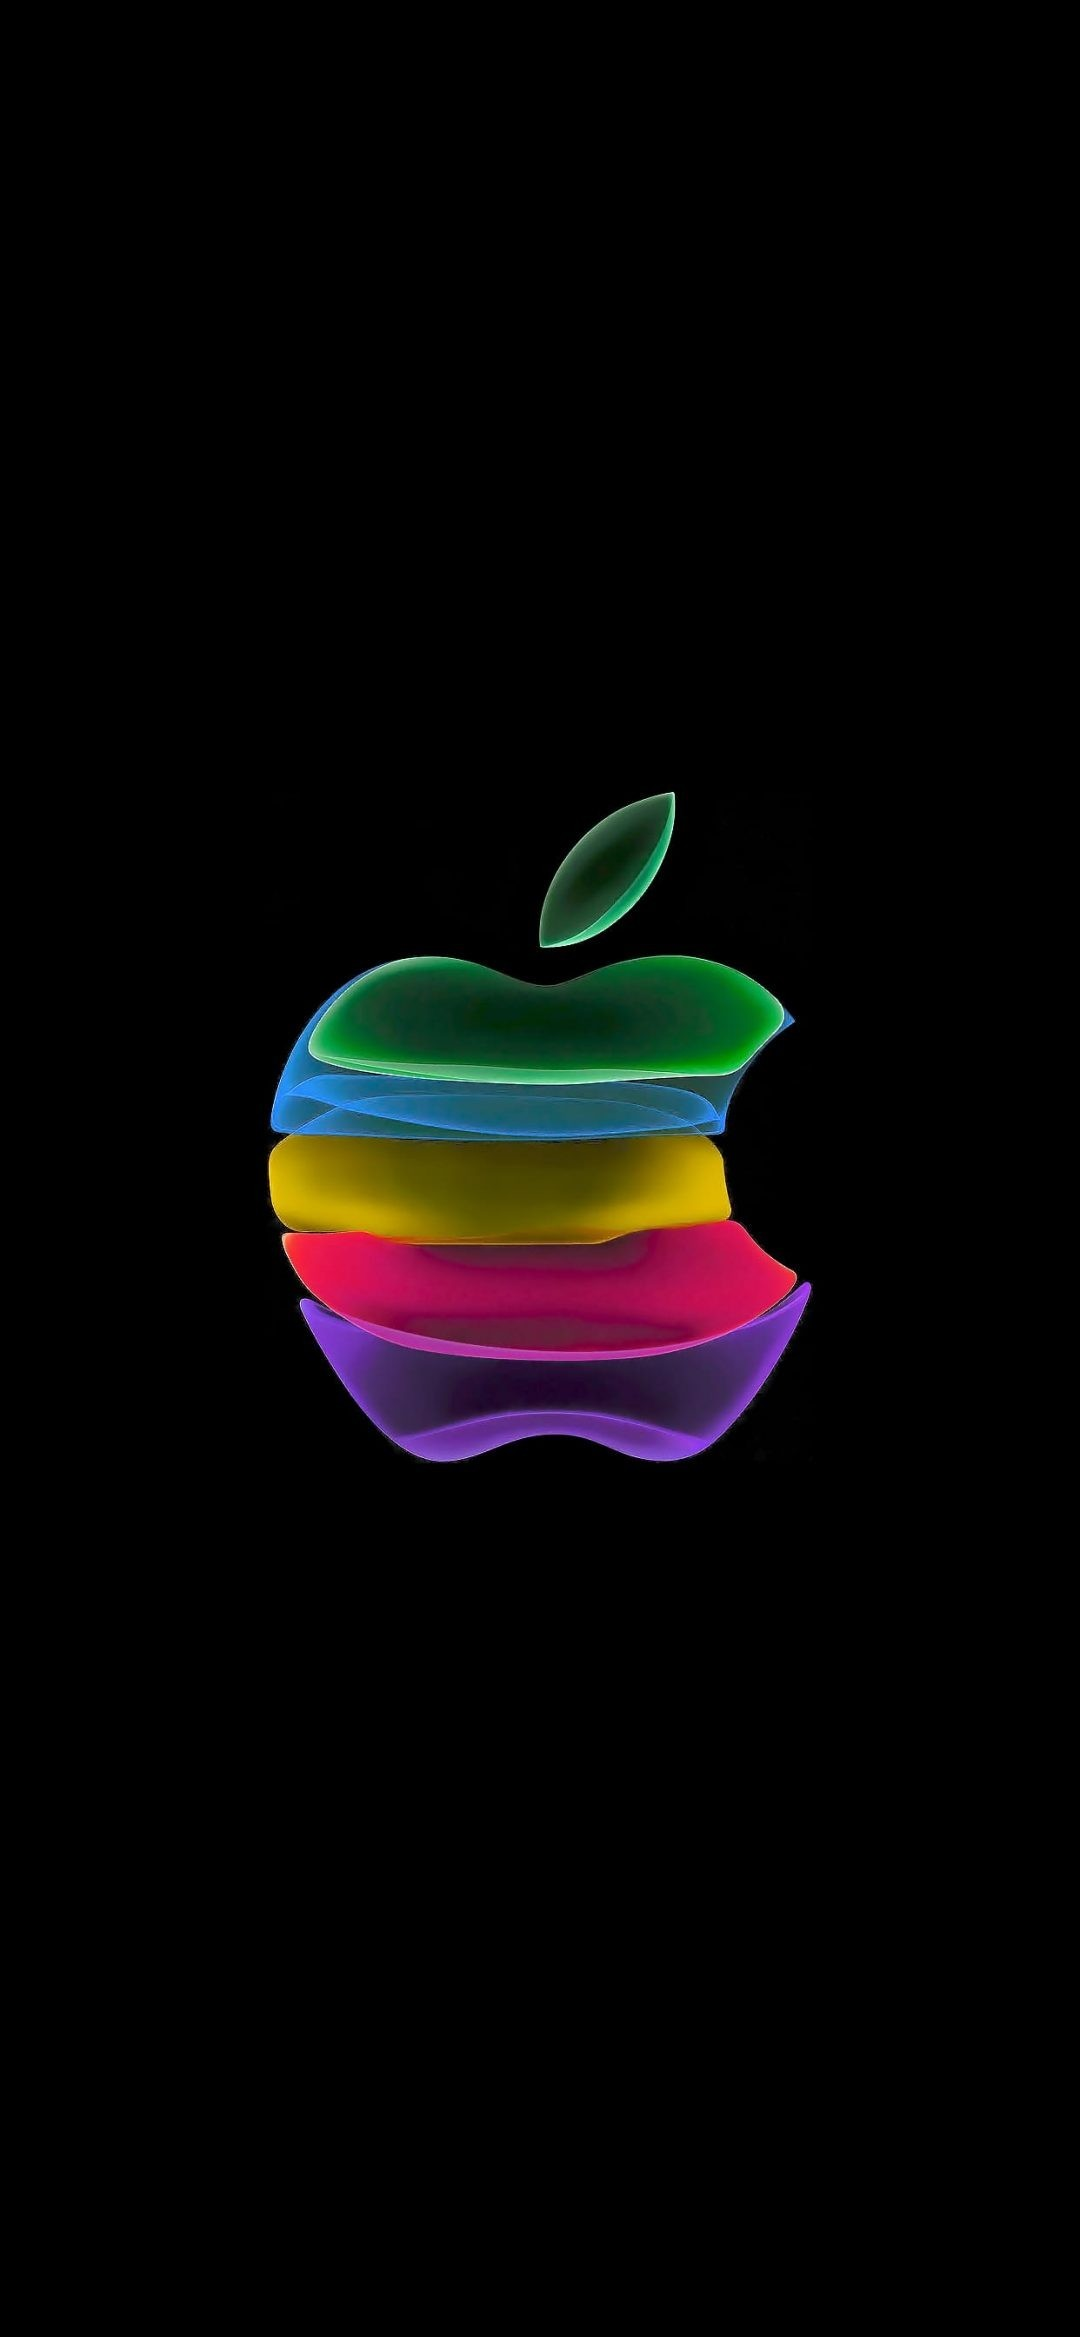 Apple Iphone 11 Wallpaper Kolpaper Awesome Free Hd Wallpapers